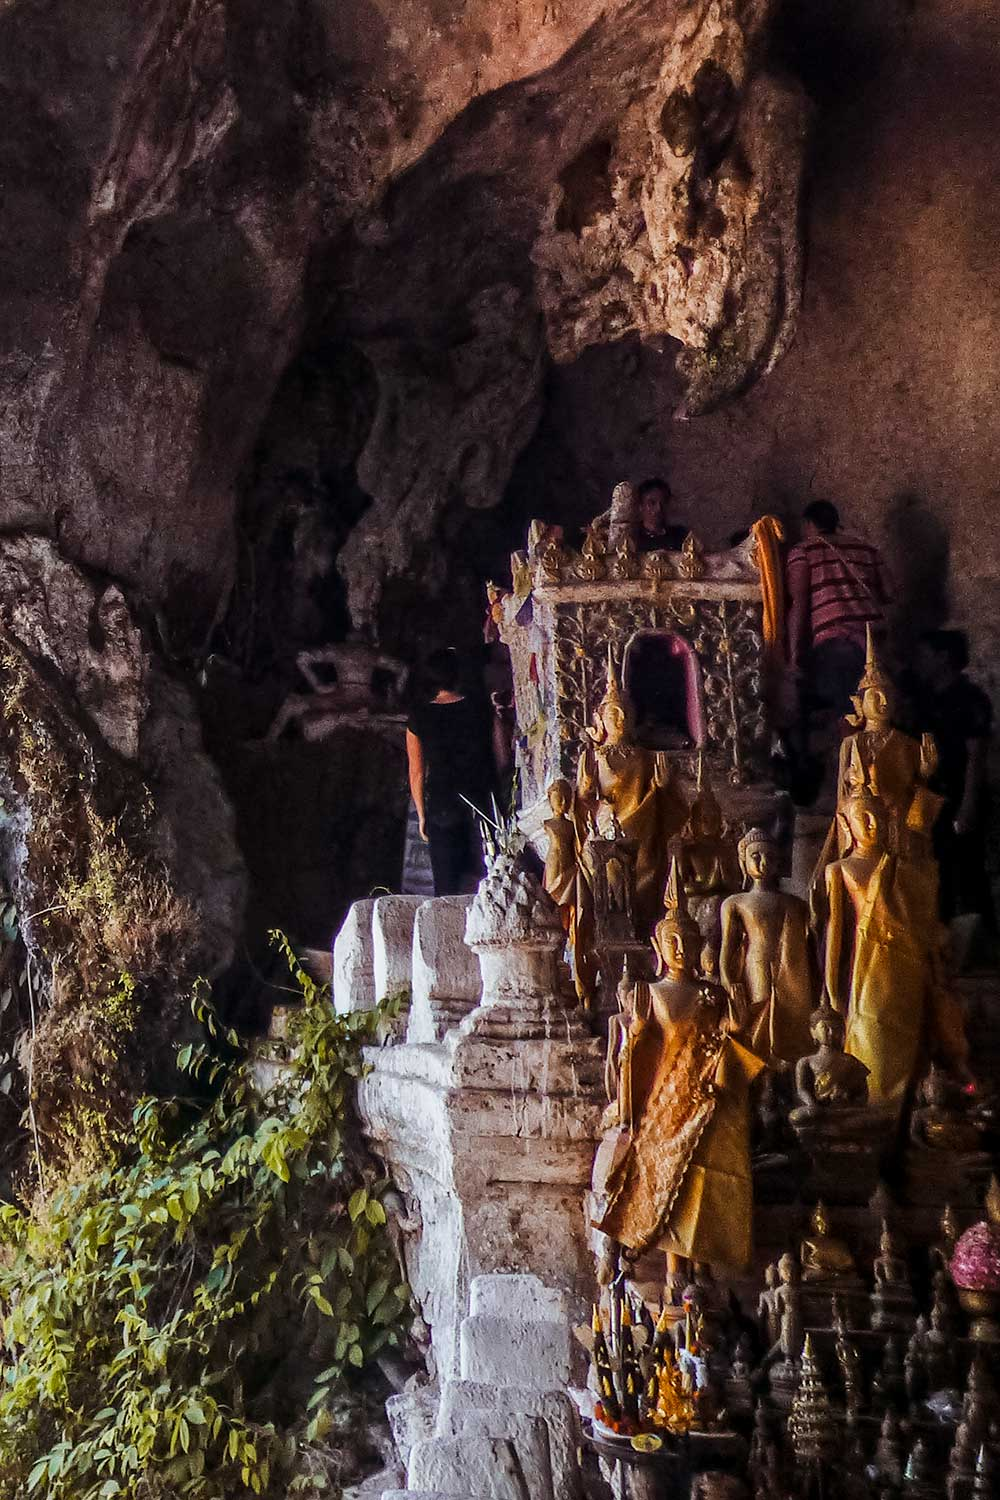 Day excursion from Luang Prabang to the Pak Ou Caves